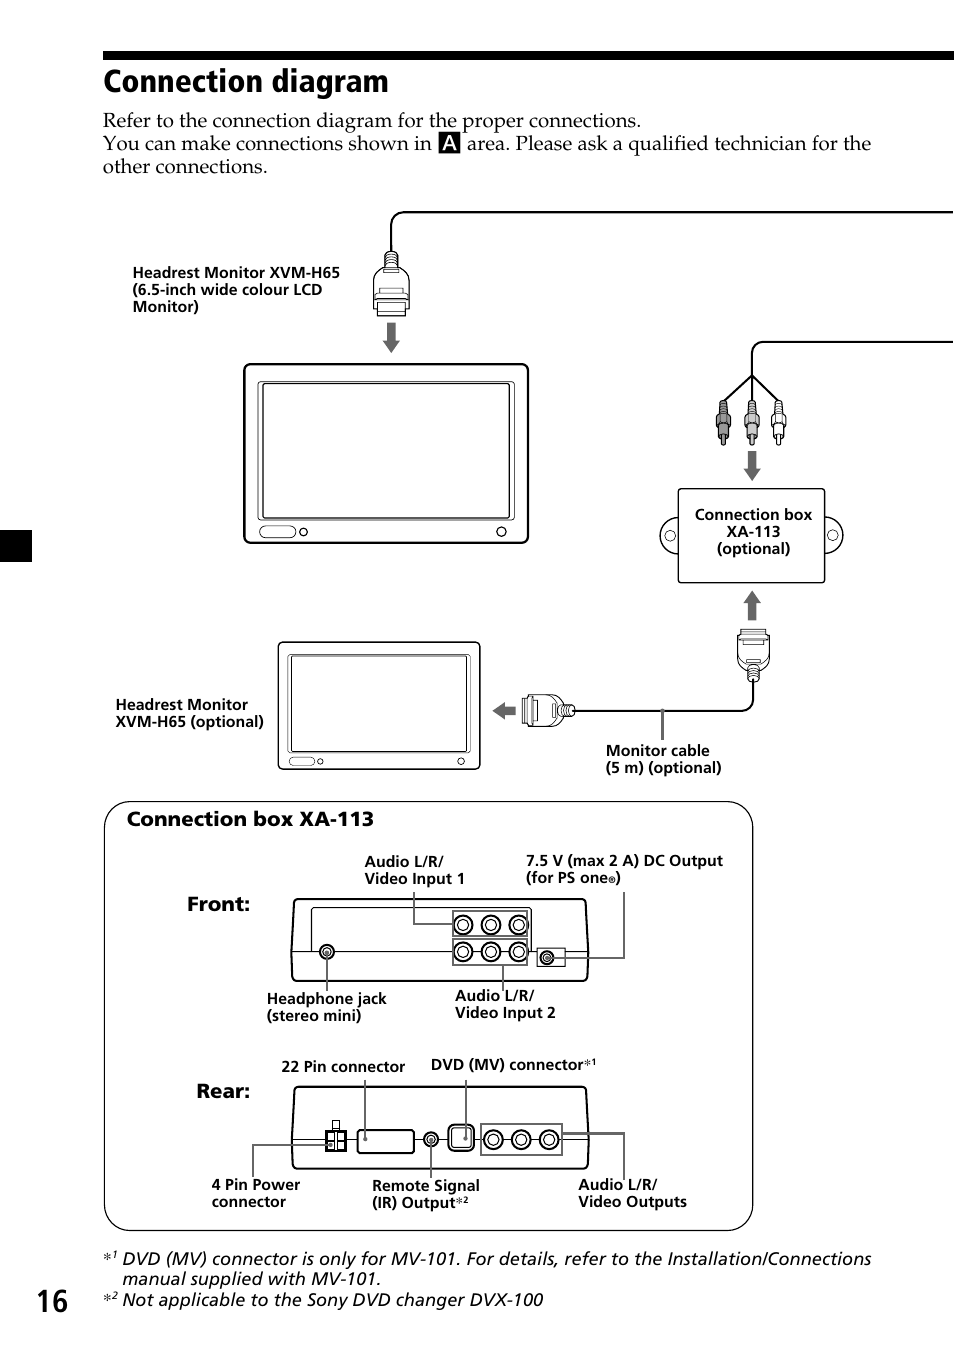 medium resolution of connection diagram 16 connection diagram front connection box xa 113 rear sony xvm h65 user manual page 16 104